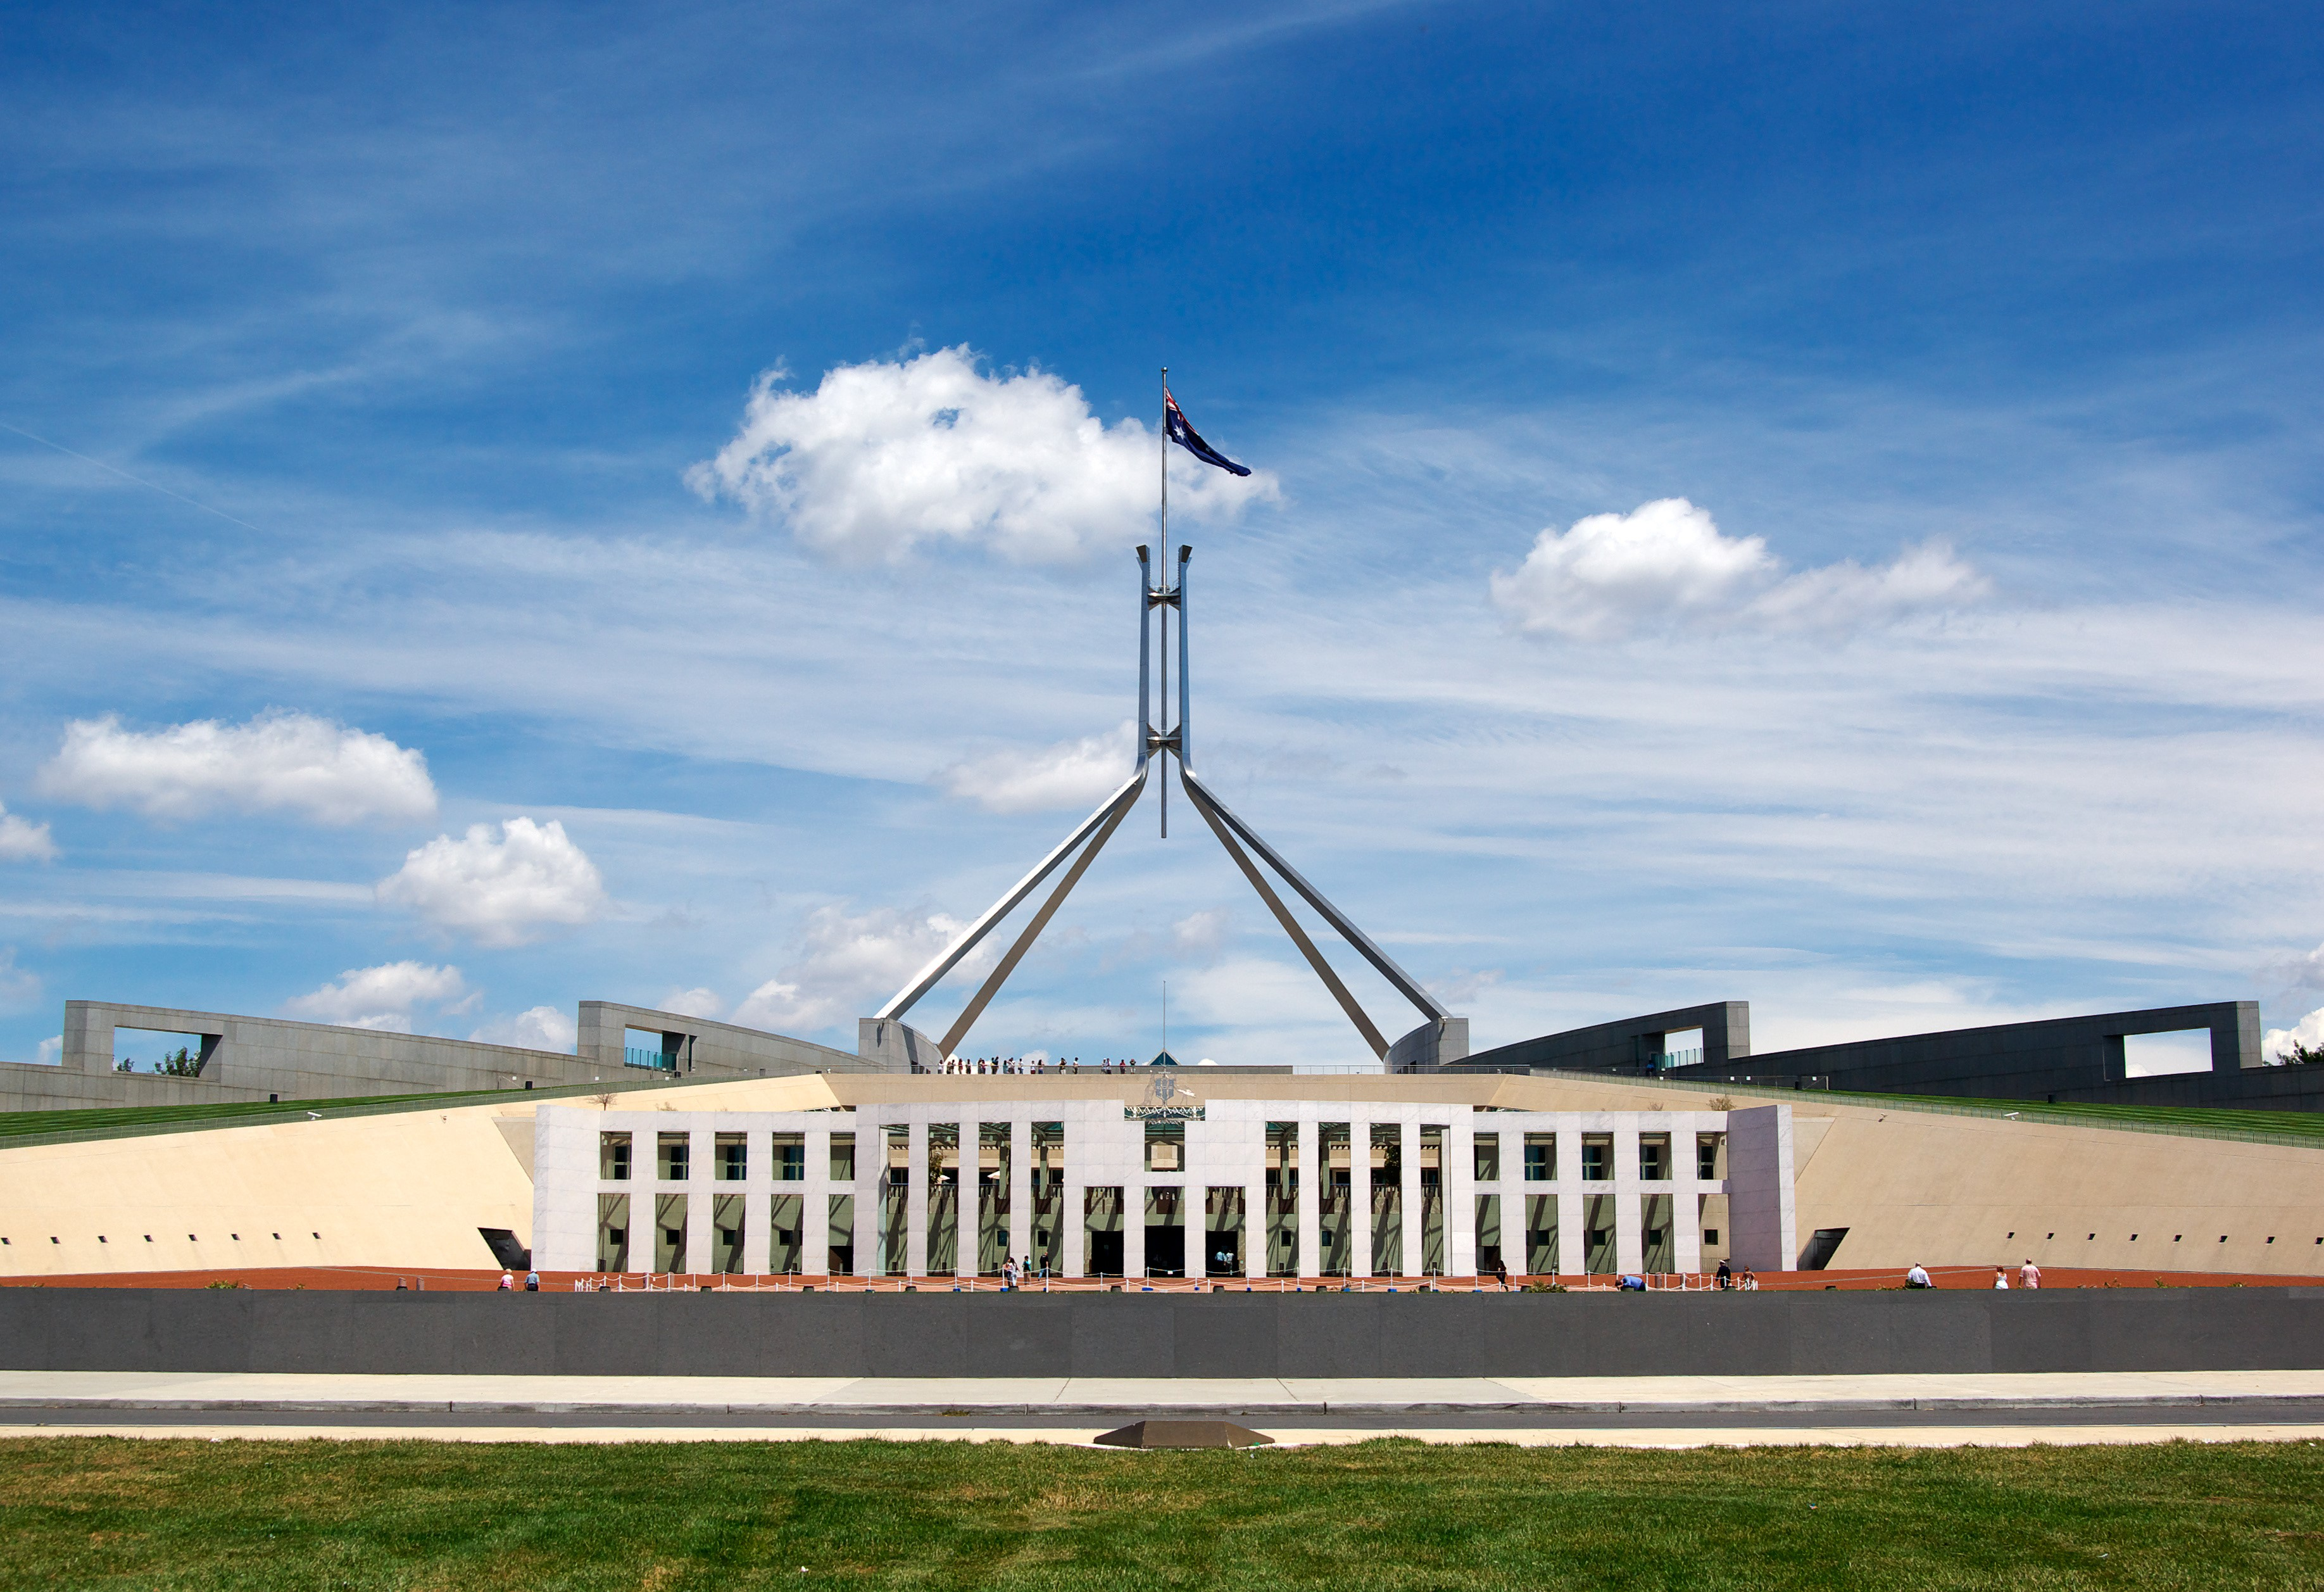 AUSTRALIA'S CHANGING POLITICAL LANDSCAPE: IMPACT OF ELECTORAL REDISTRIBUTION